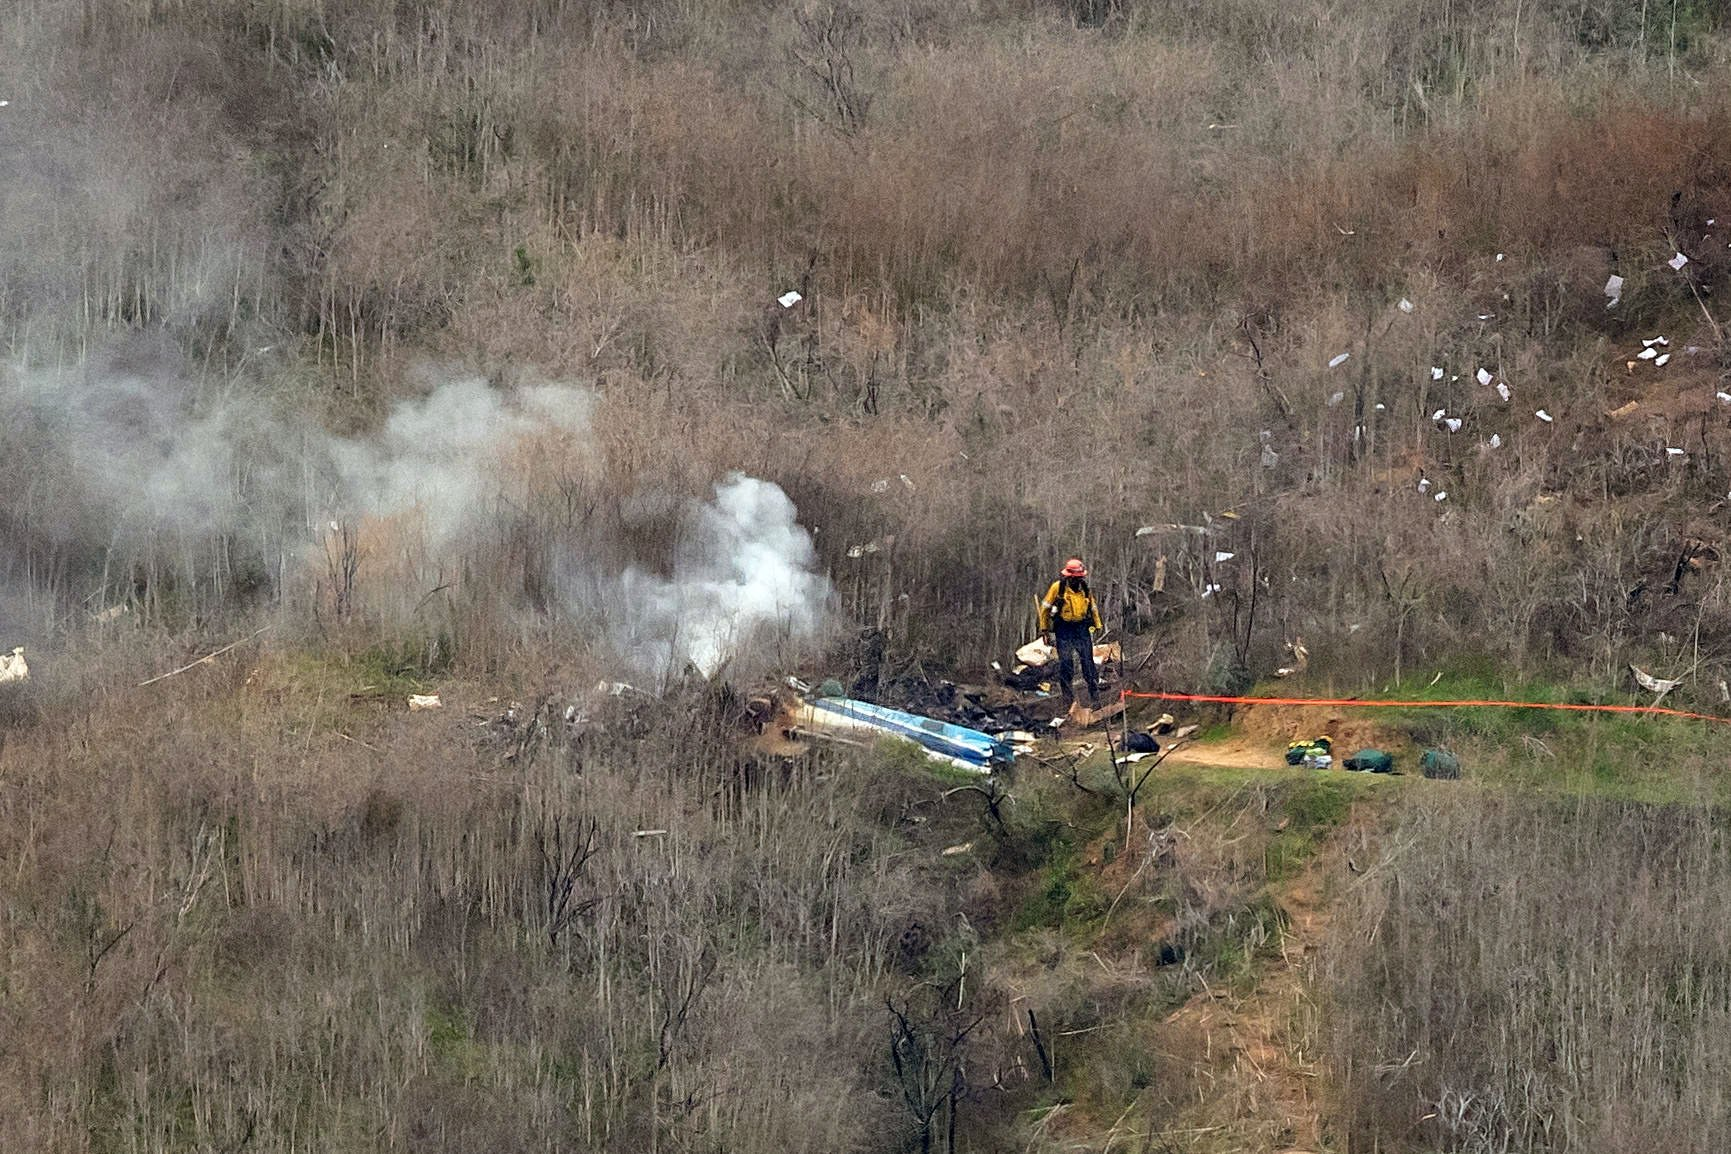 The site of a helicopter crash that claimed the lives of Kobe Bryant and his daughter Gianna Bryant, 13, on January 26, 2020, in Calabasas, California. | Source: Getty Images.